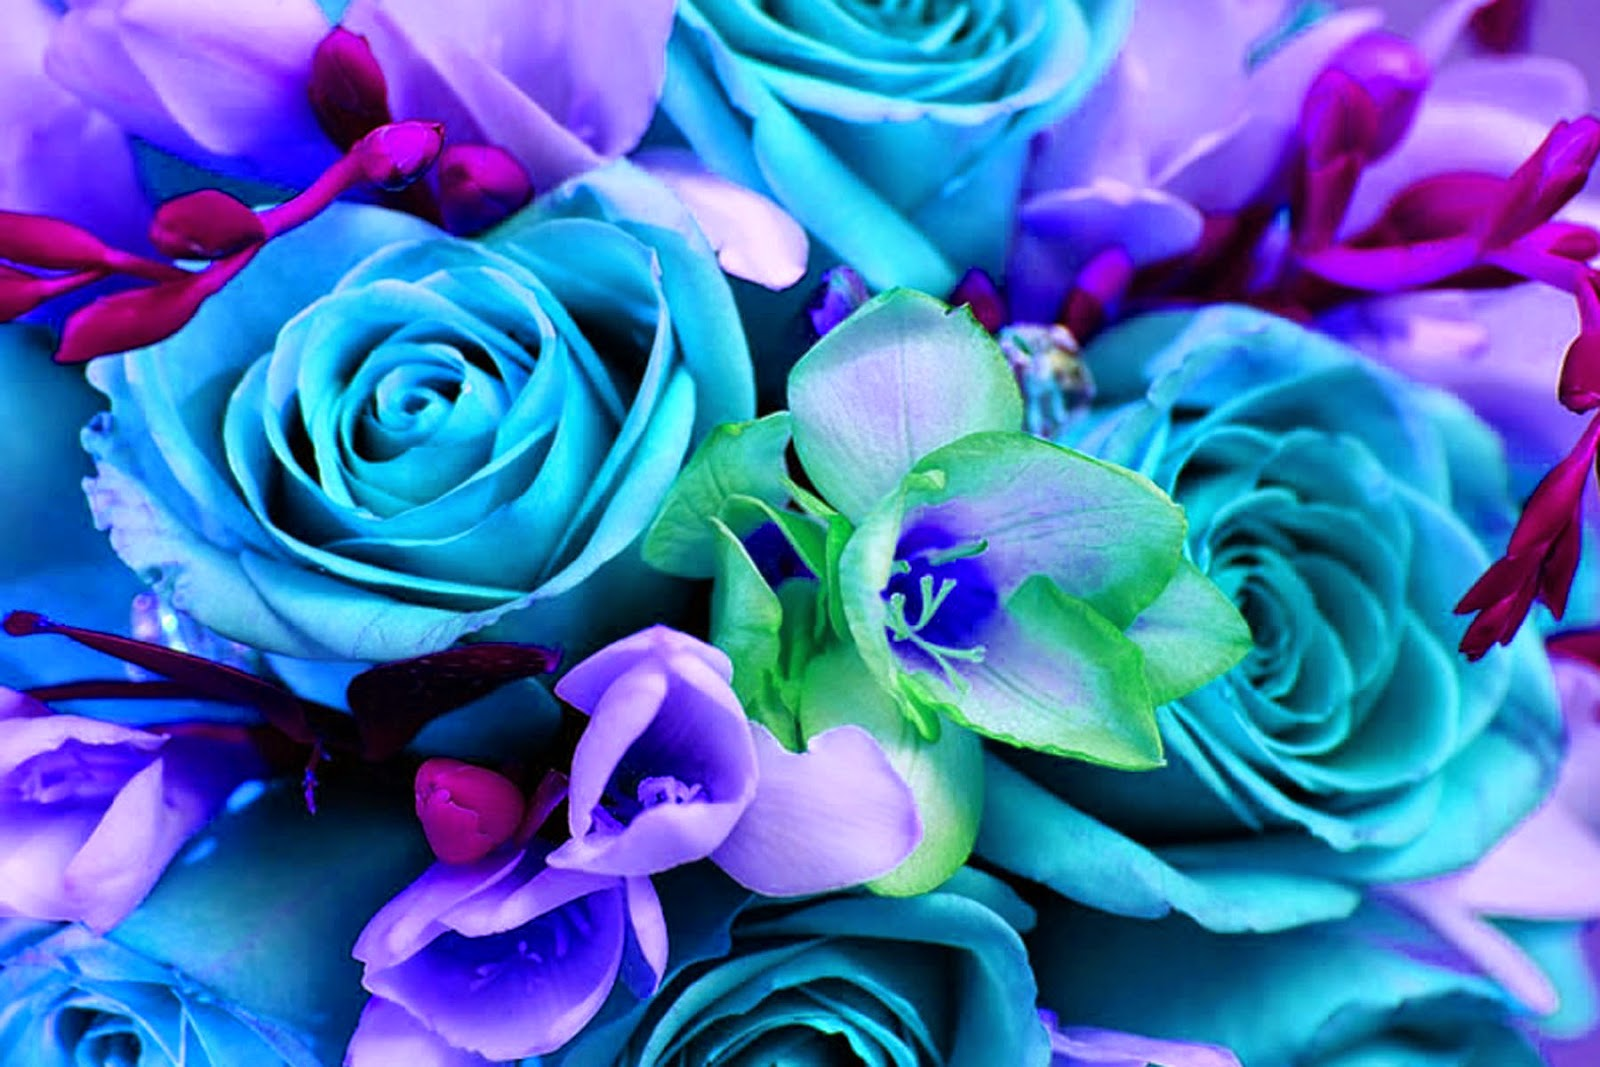 Doodlecraft: Colorful Bouquet Of Flowers Wallpaper Background